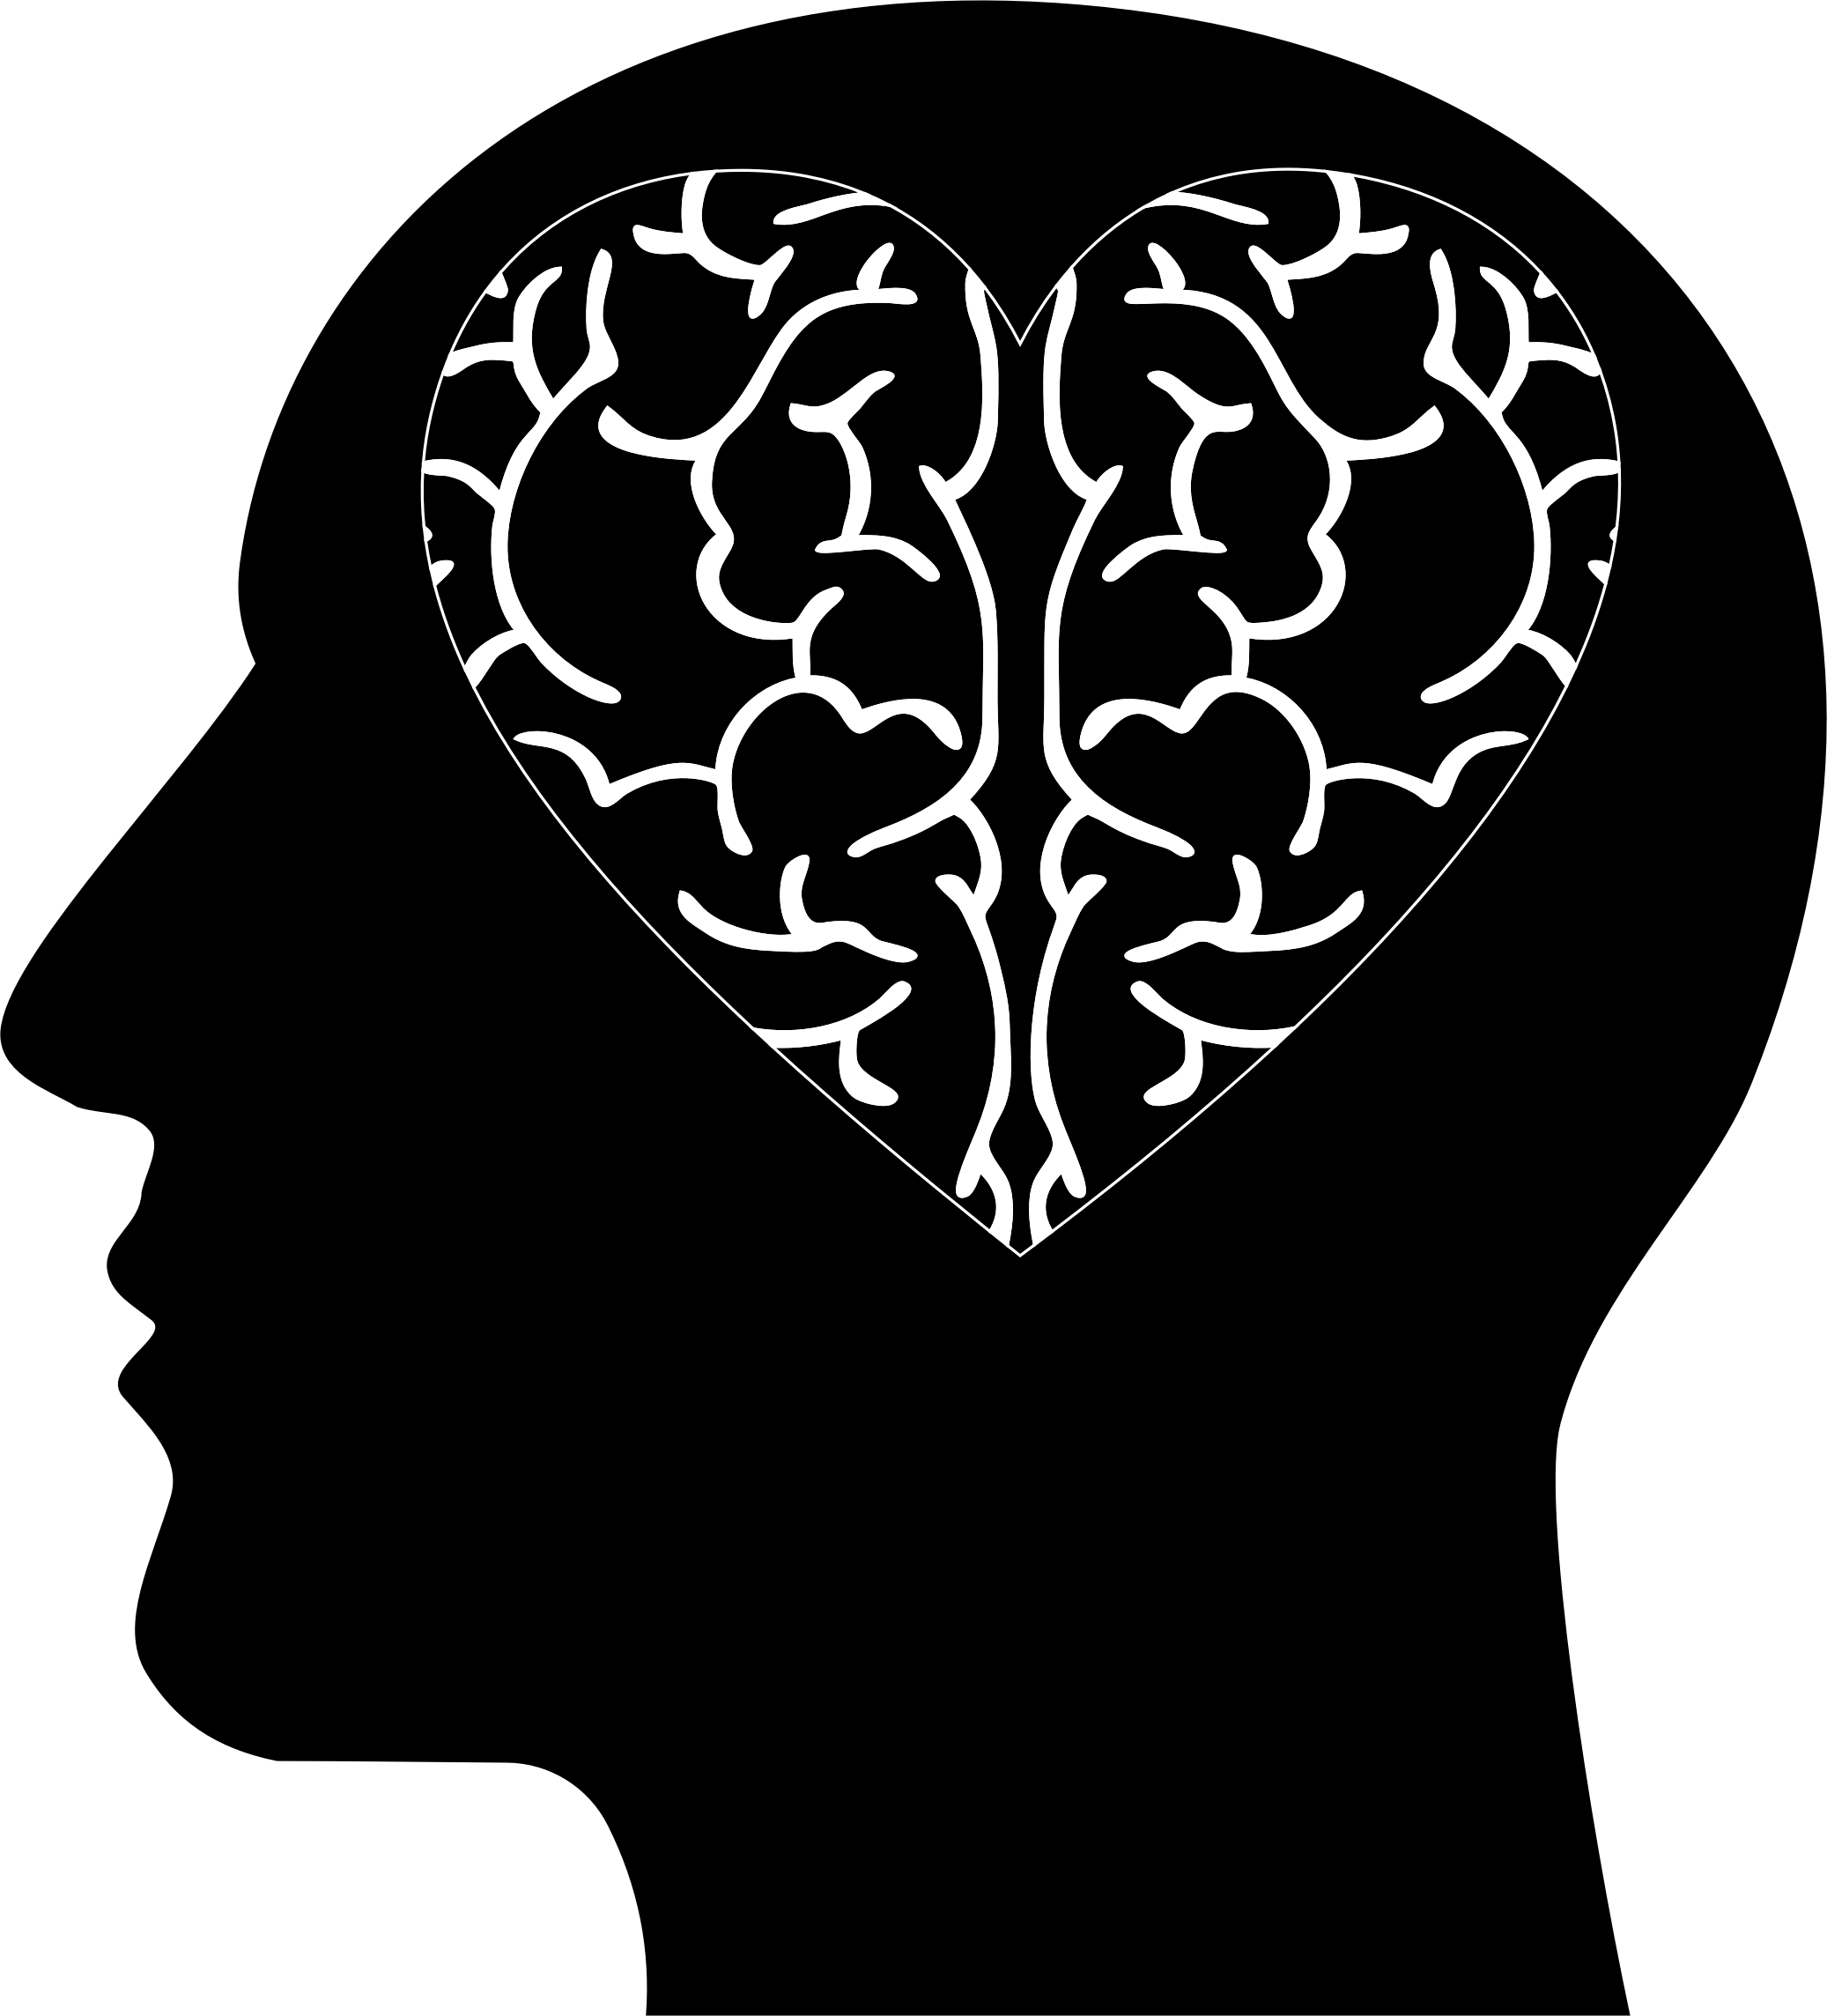 clipart free stock Heart big image png. Mental clipart brain head.